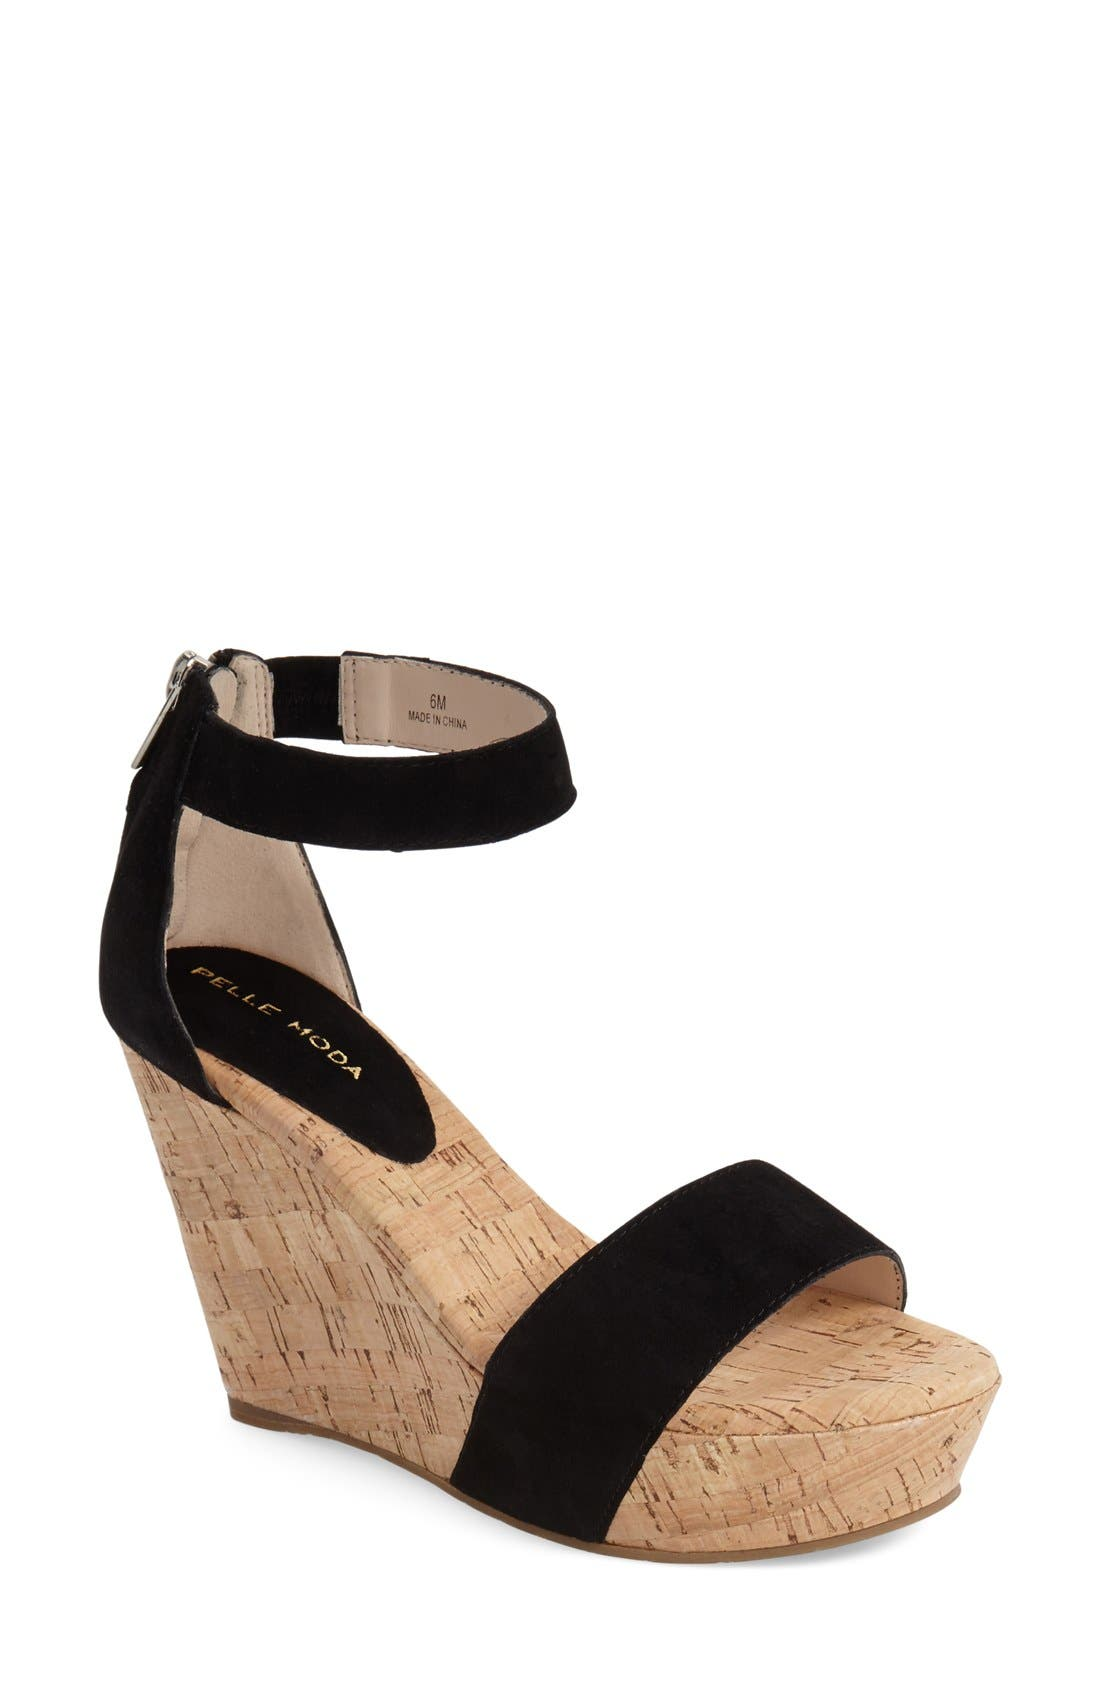 'Clare' Sandal,                         Main,                         color, 001